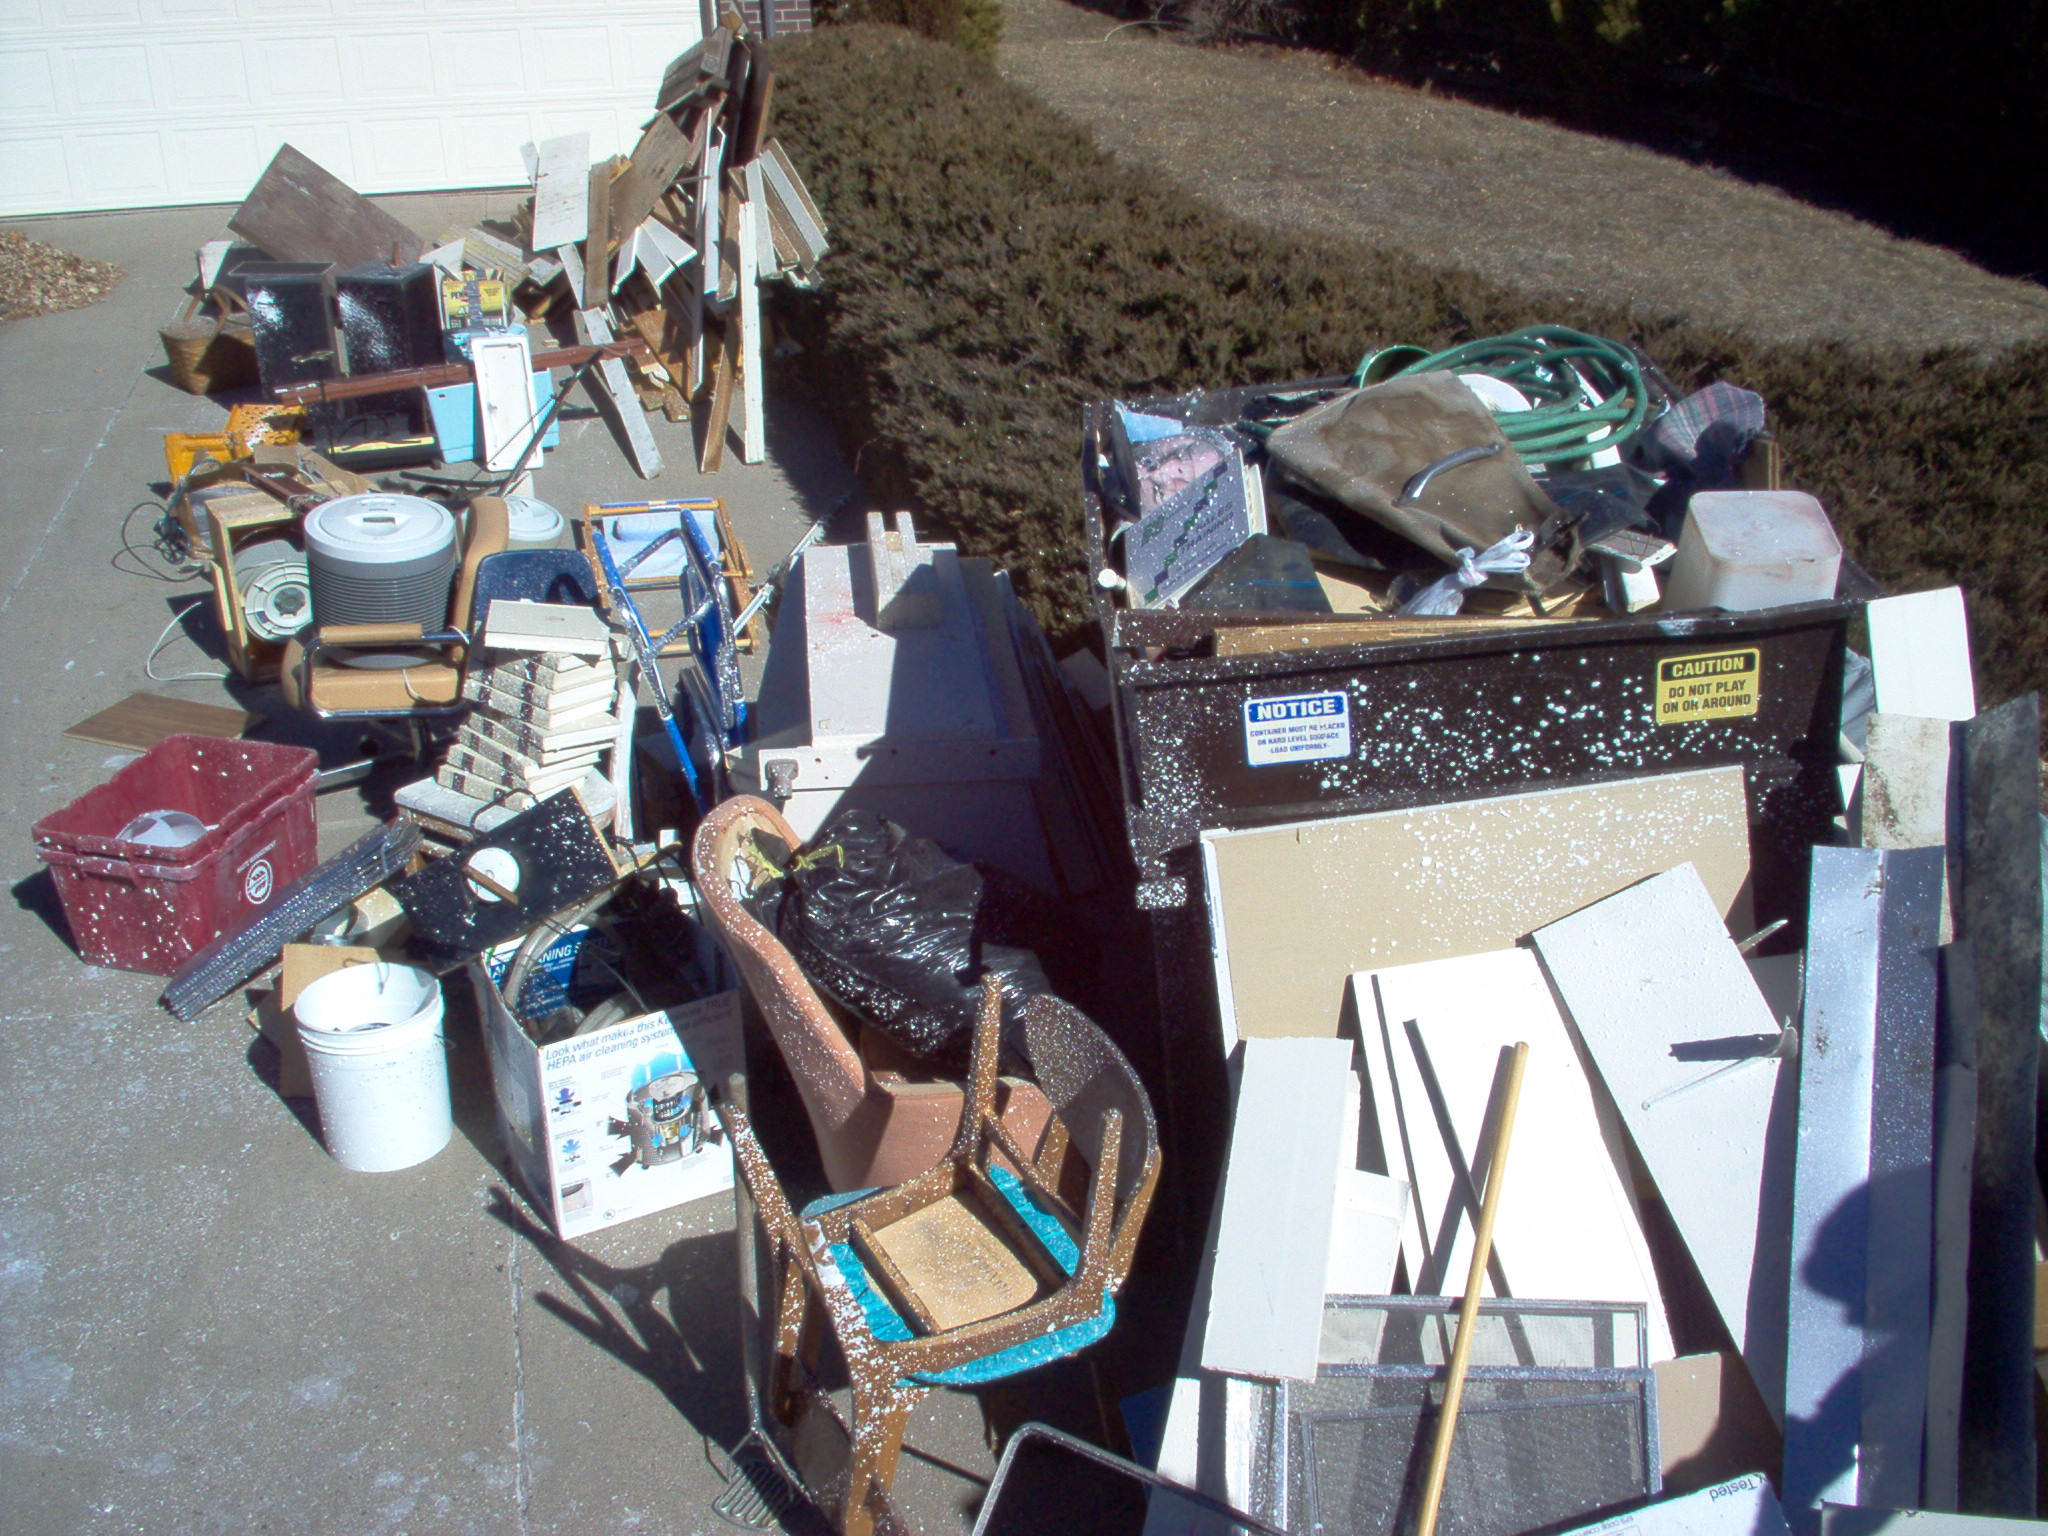 San Diego Junk Removal & San Diego Junk Hauling Services